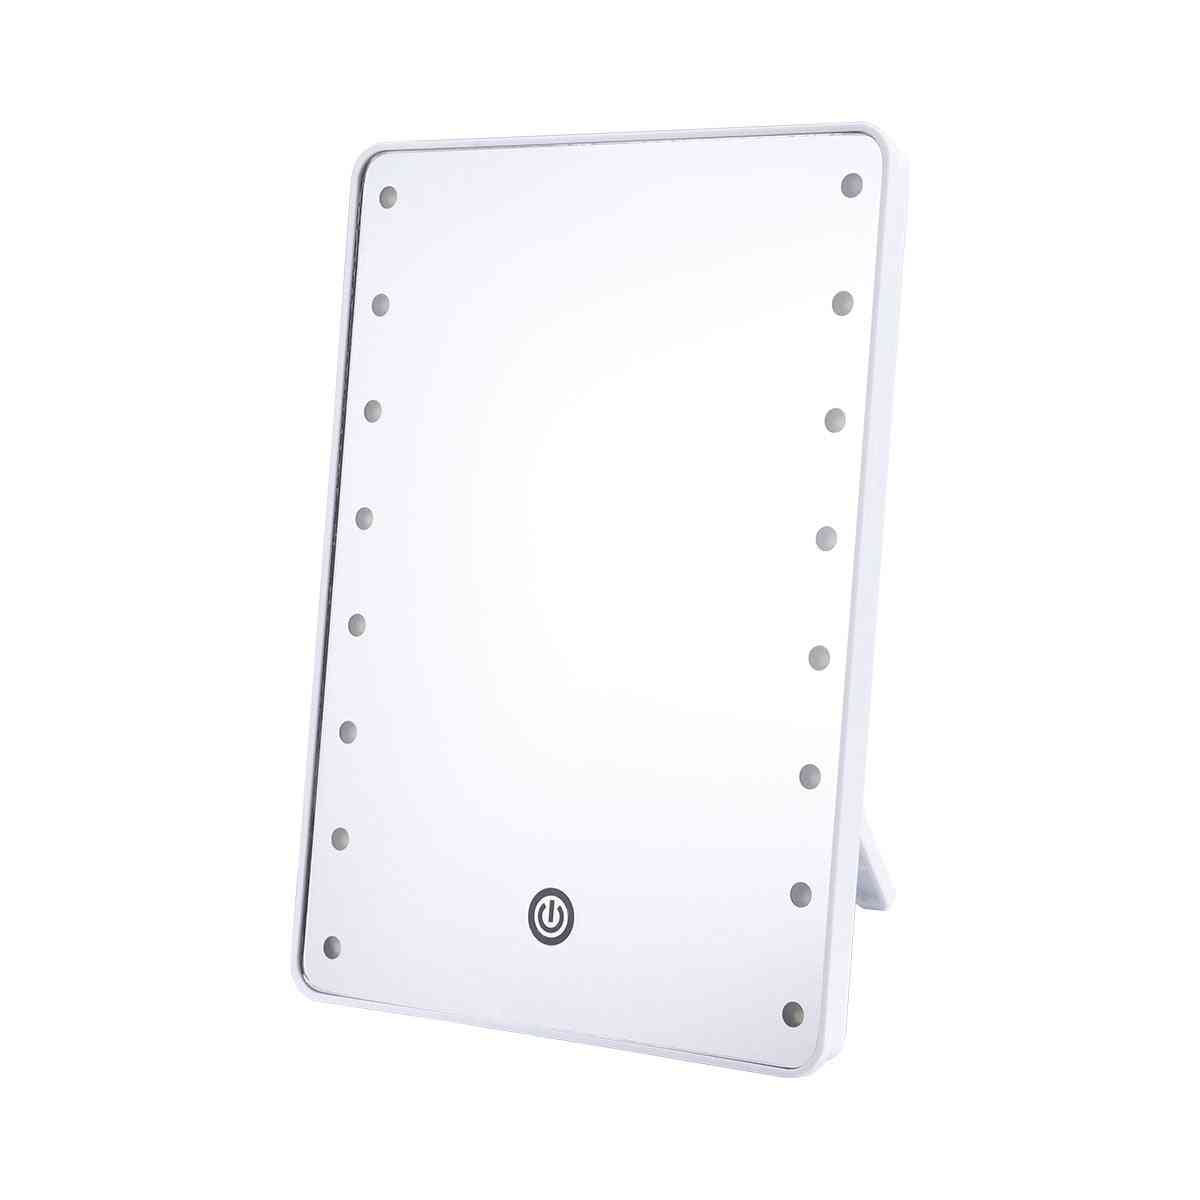 Cosmetic Mirror With 16 Leds, Touch Dimmer Switch - Battery Operated